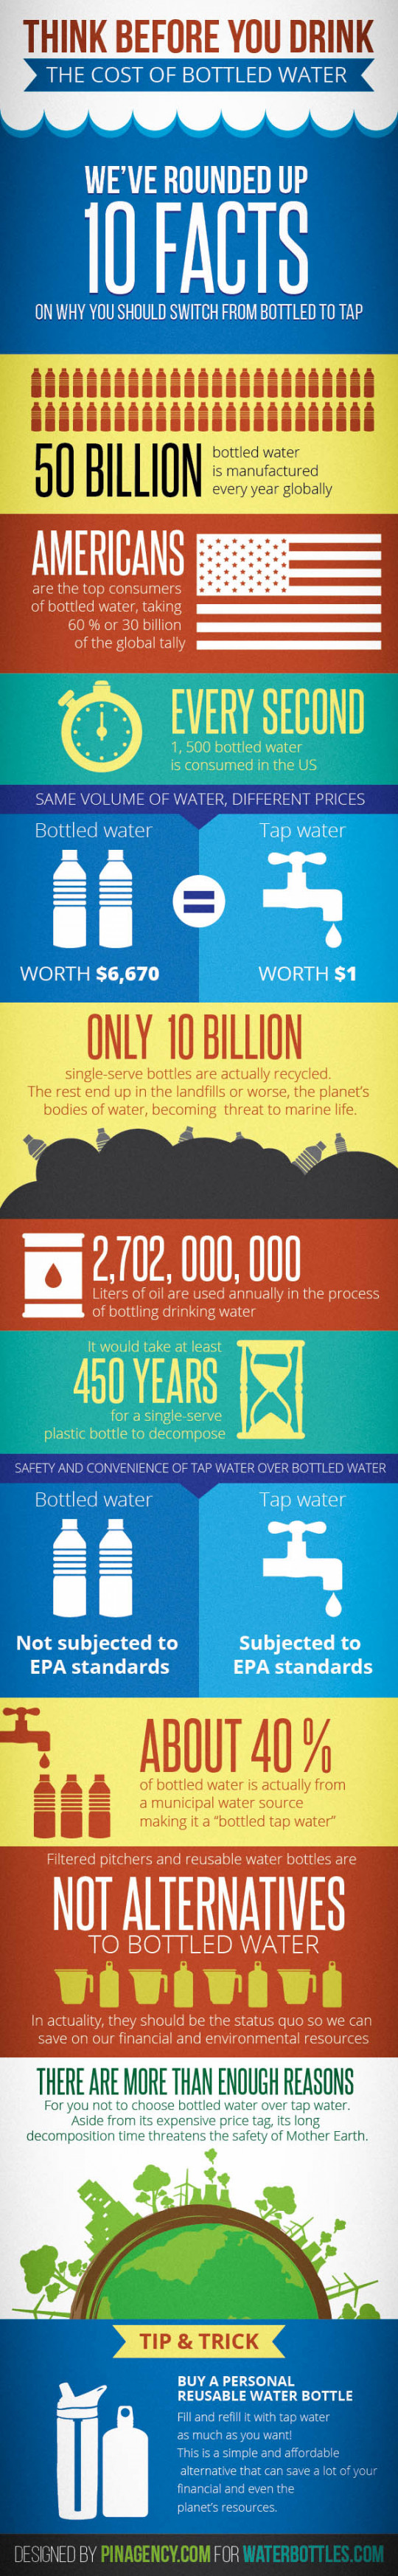 Think Before You Drink: The Costs of Bottled Water